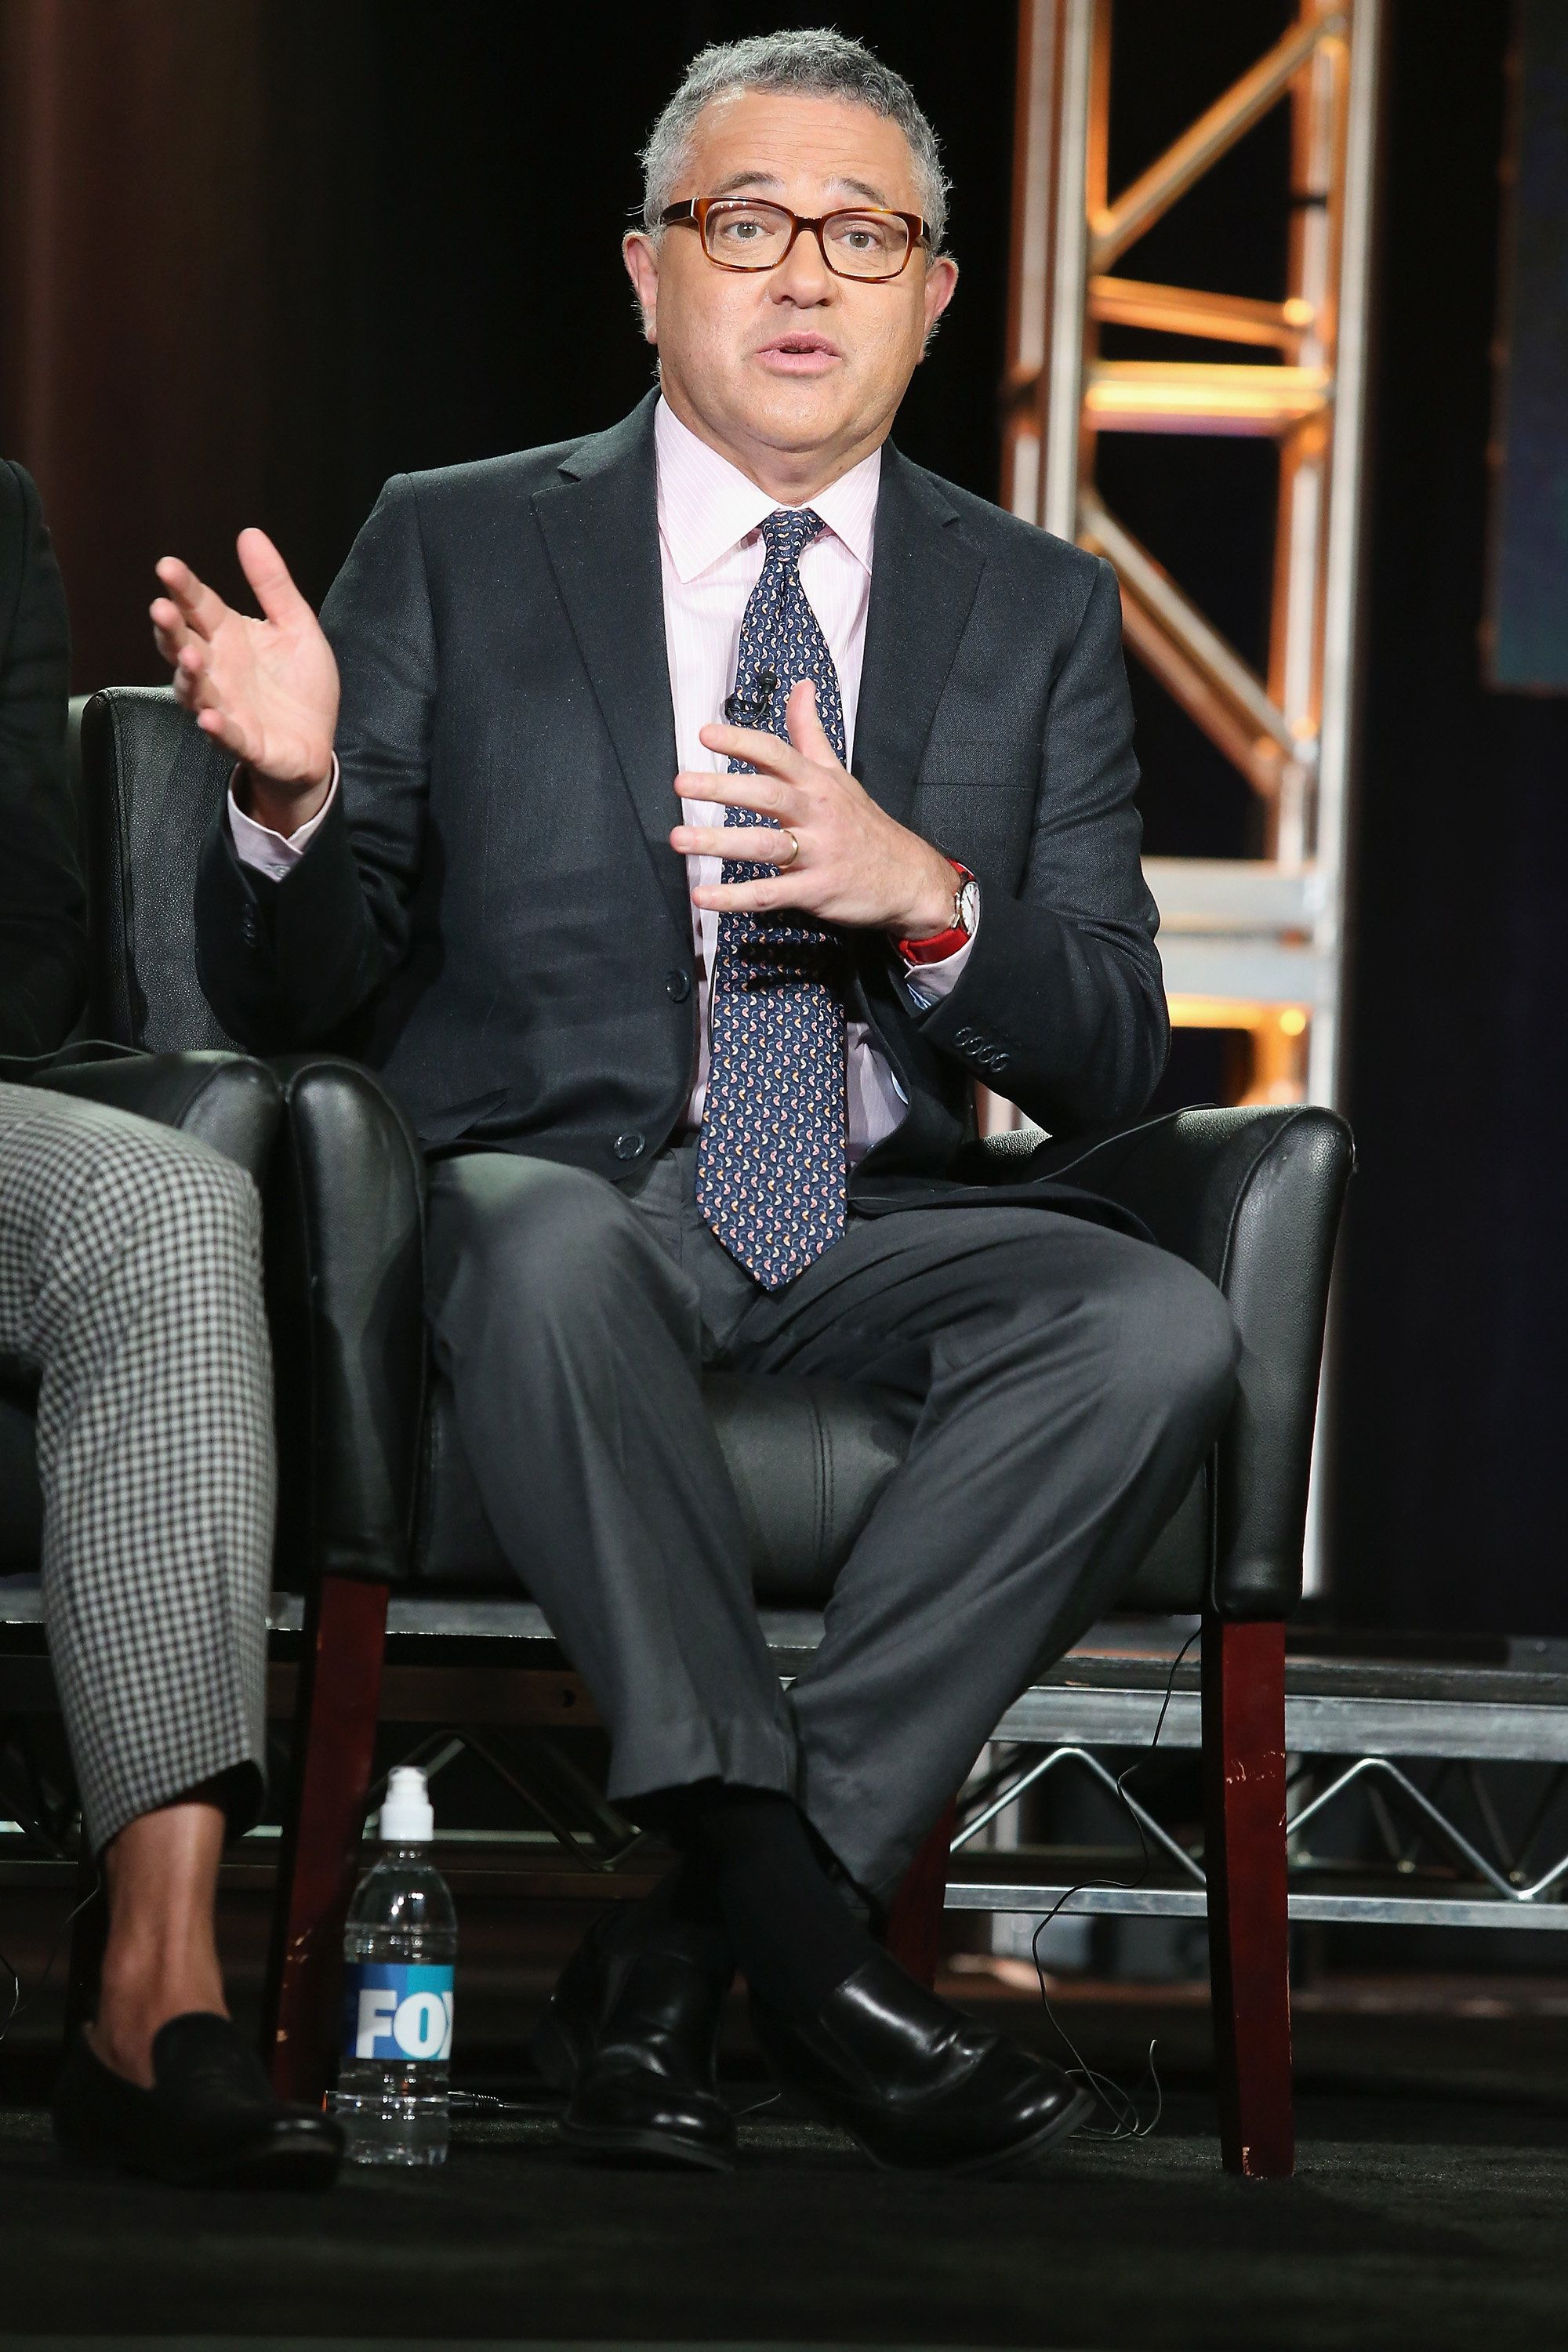 PASADENA, CA - JANUARY 16:  Consultant Jeffrey Toobin speaks onstage during 'The People v. O.J. Simpson: American Crime Story' panel discussion at the FX portion of the 2015 Winter TCA Tour at the Langham Huntington Hotel on January 16, 2016 in Pasadena, California.  (Photo by Frederick M. Brown/Getty Images)